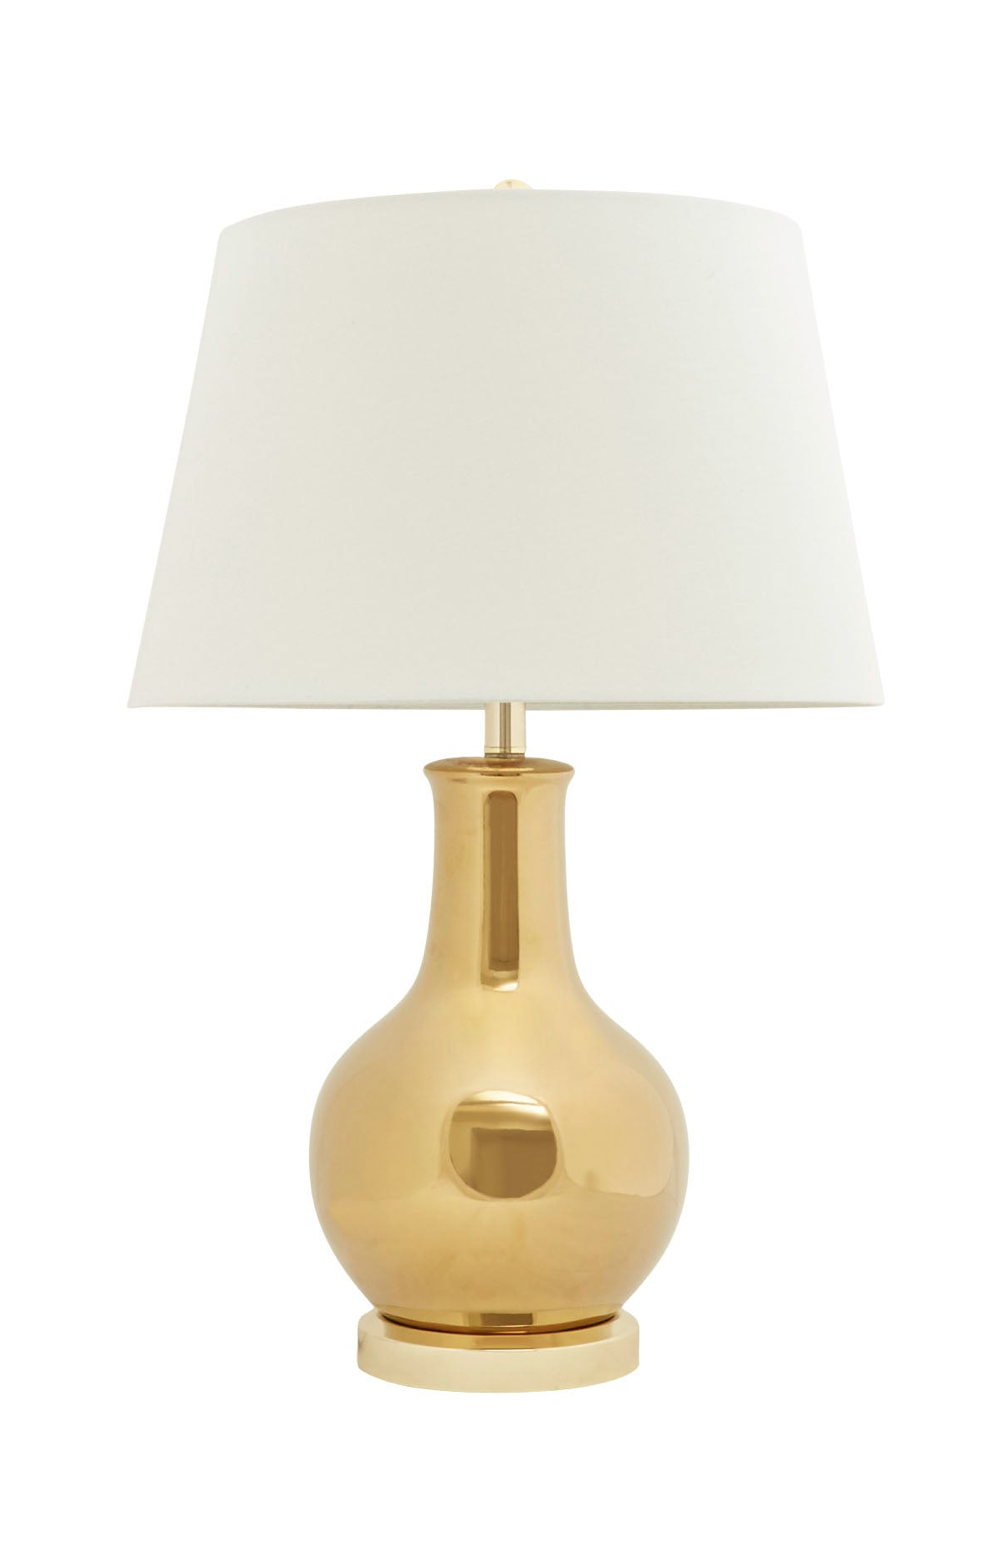 Gold Gourd Shaped Table Lamp